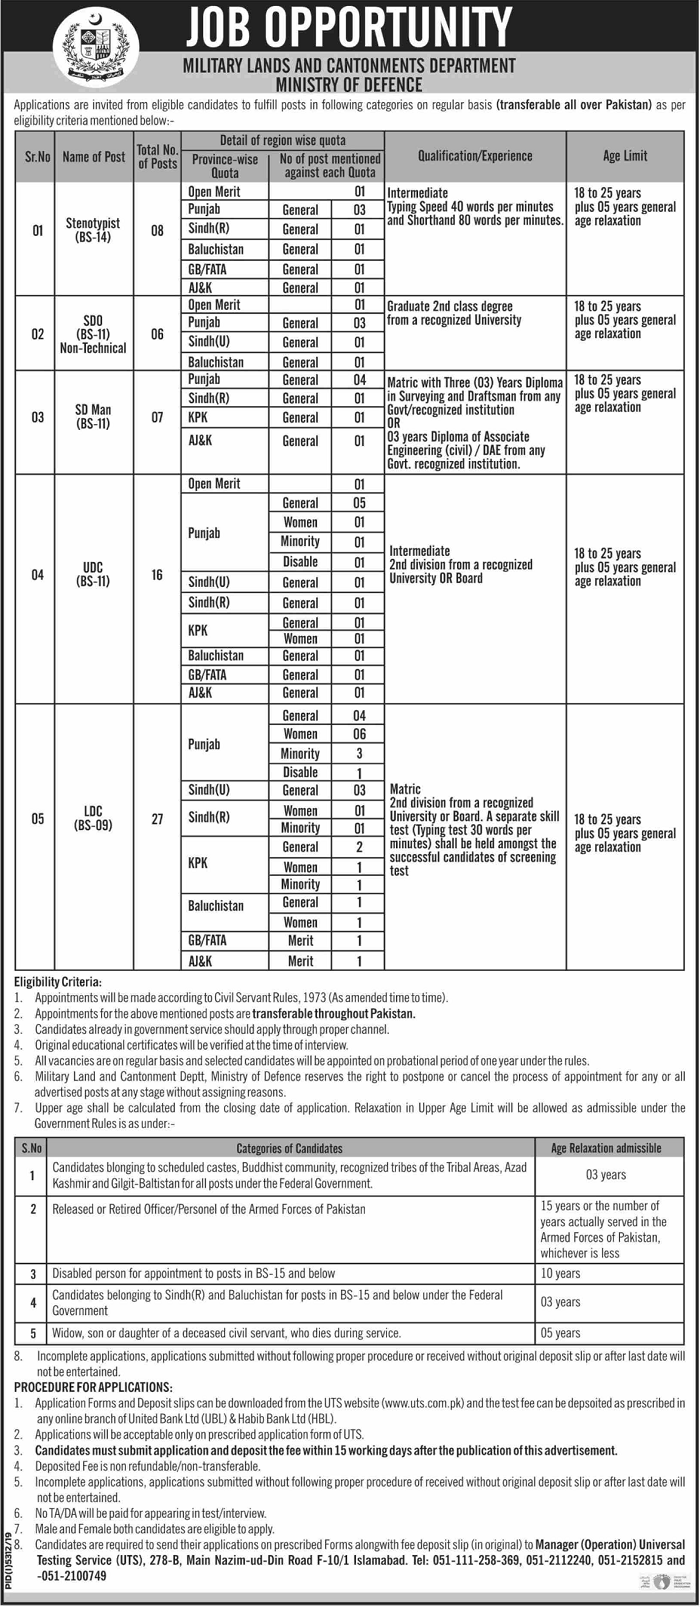 Military Lands And Cantonments Department Jobs